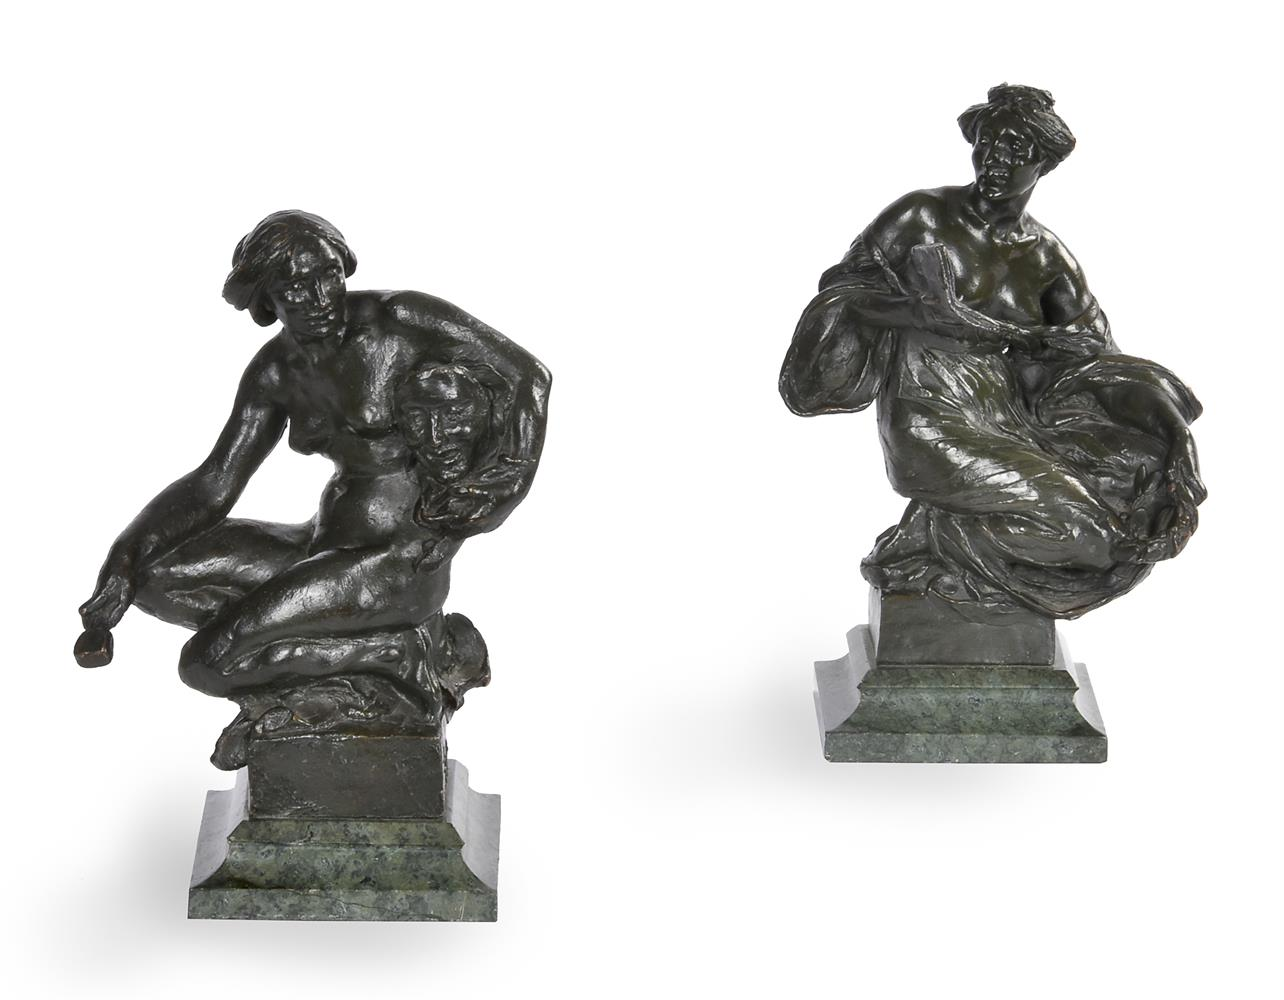 ALFRED DRURY (1856-1944), A PAIR OF BRONZE FEMALE FIGURES OF DRAMA AND LITERATURE